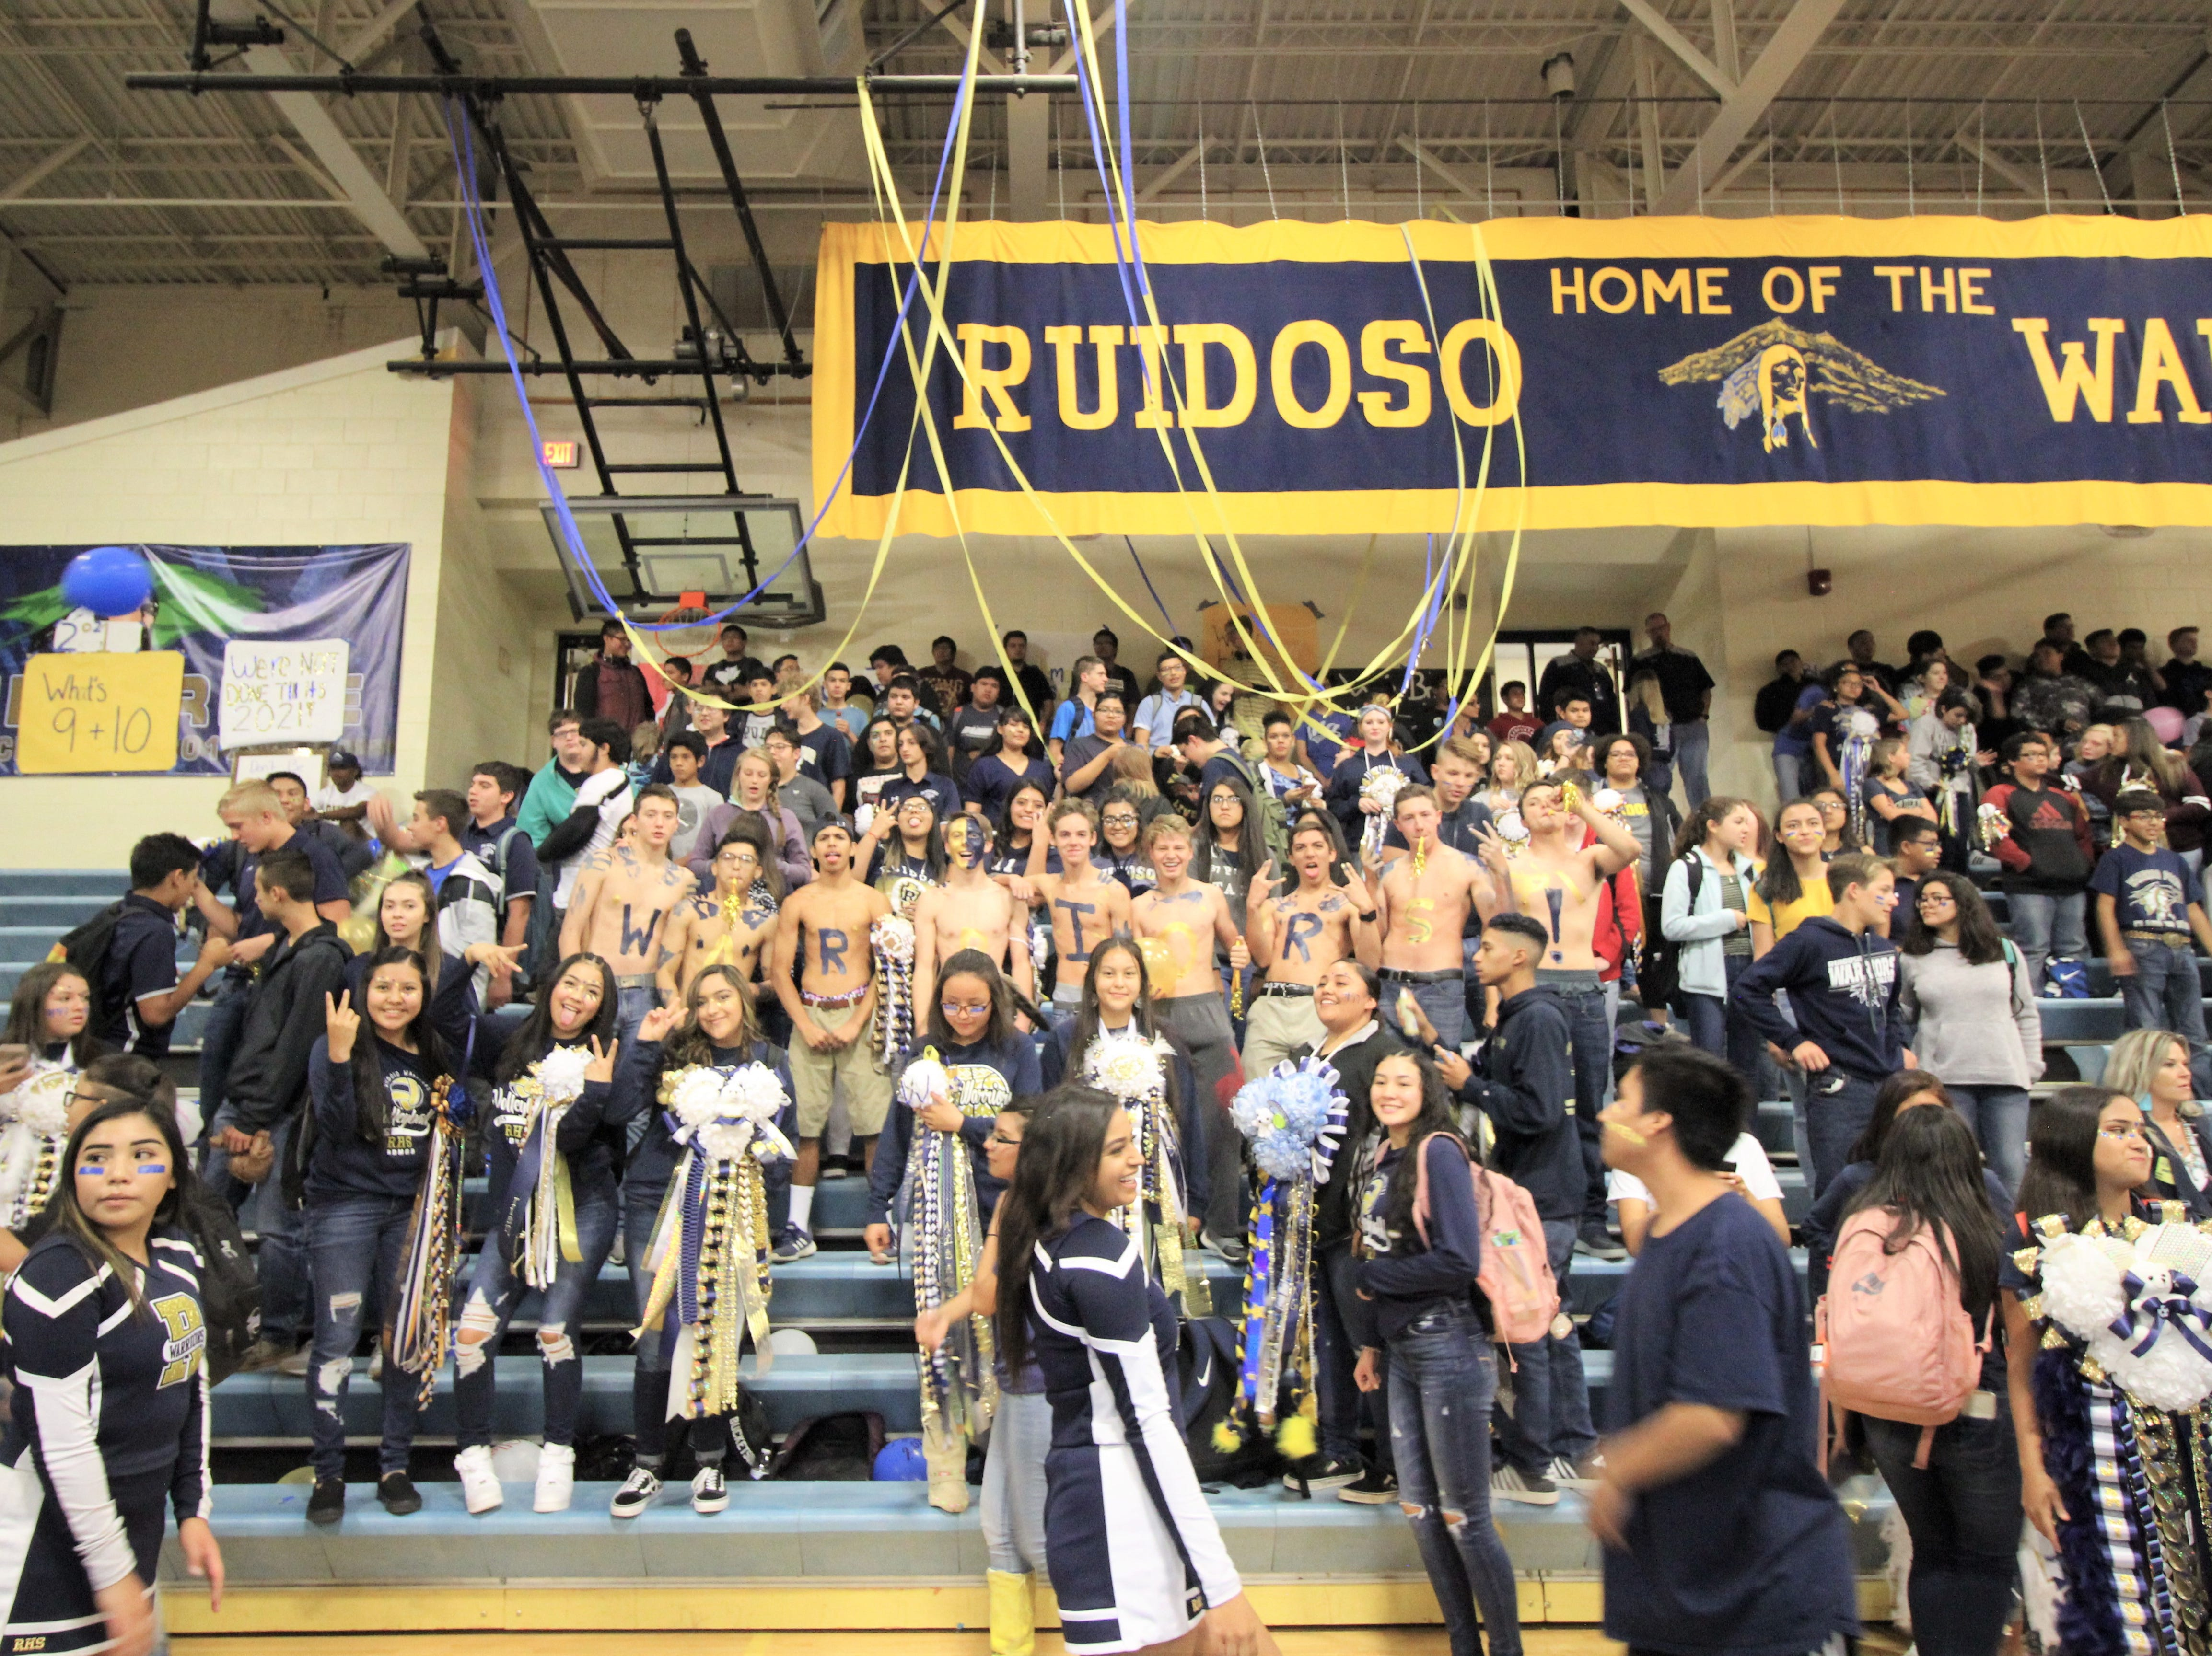 School spirit shines through at the 2018 Homecoming pep rally cheering on the win for the Warriors.